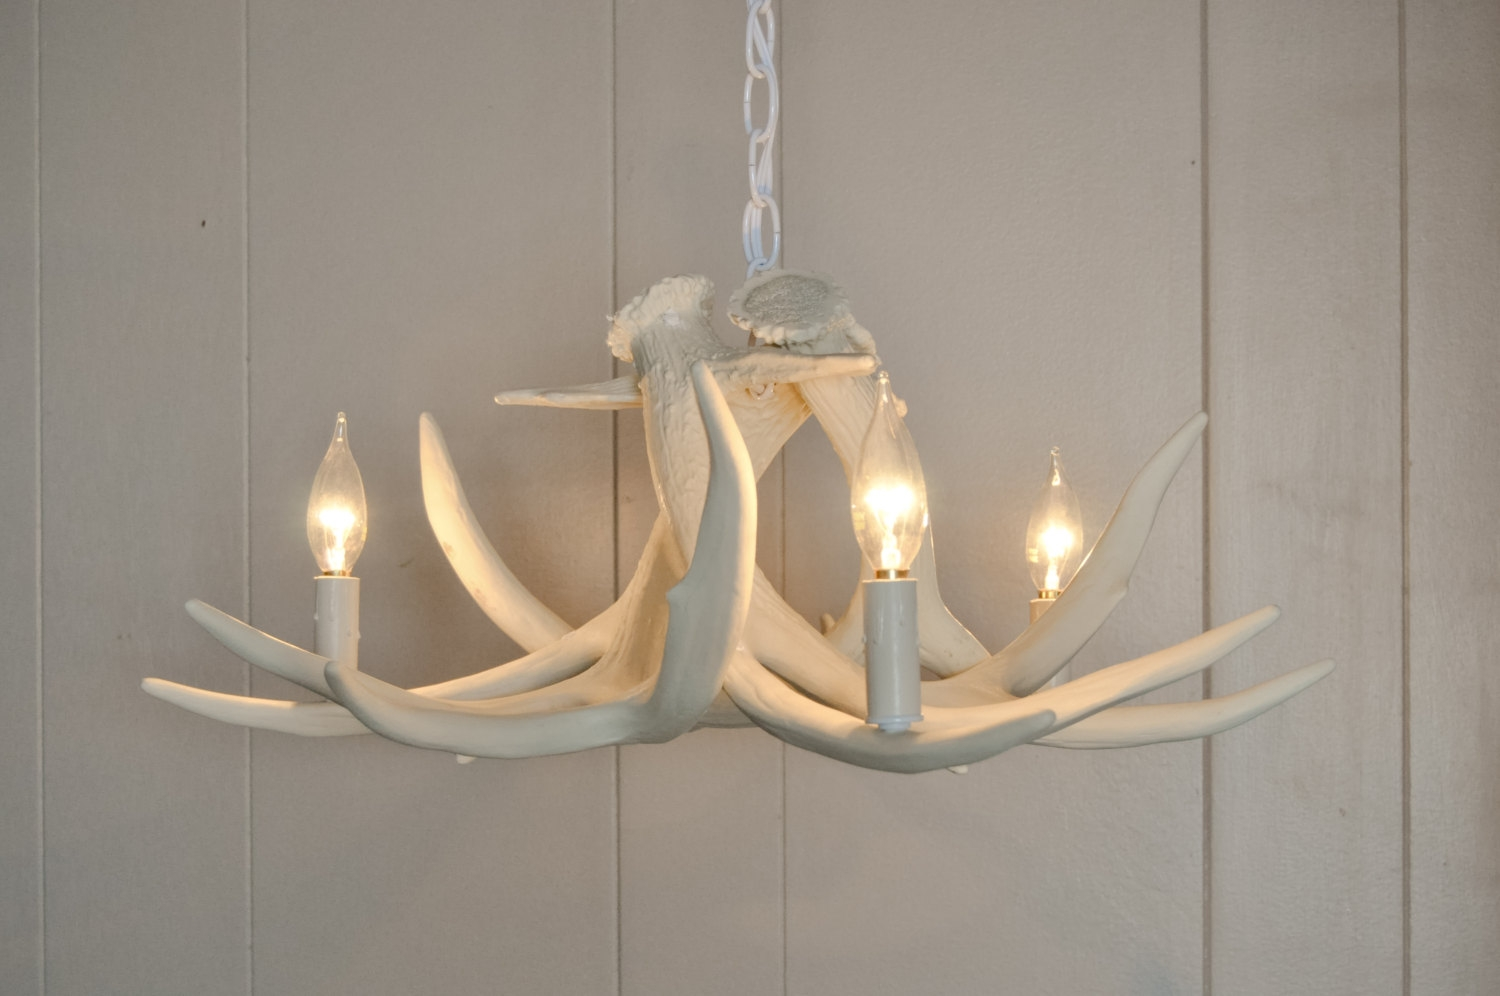 Faux Antler Chandelier White Roselawnlutheran With Regard To Modern Antler Chandelier (View 15 of 15)